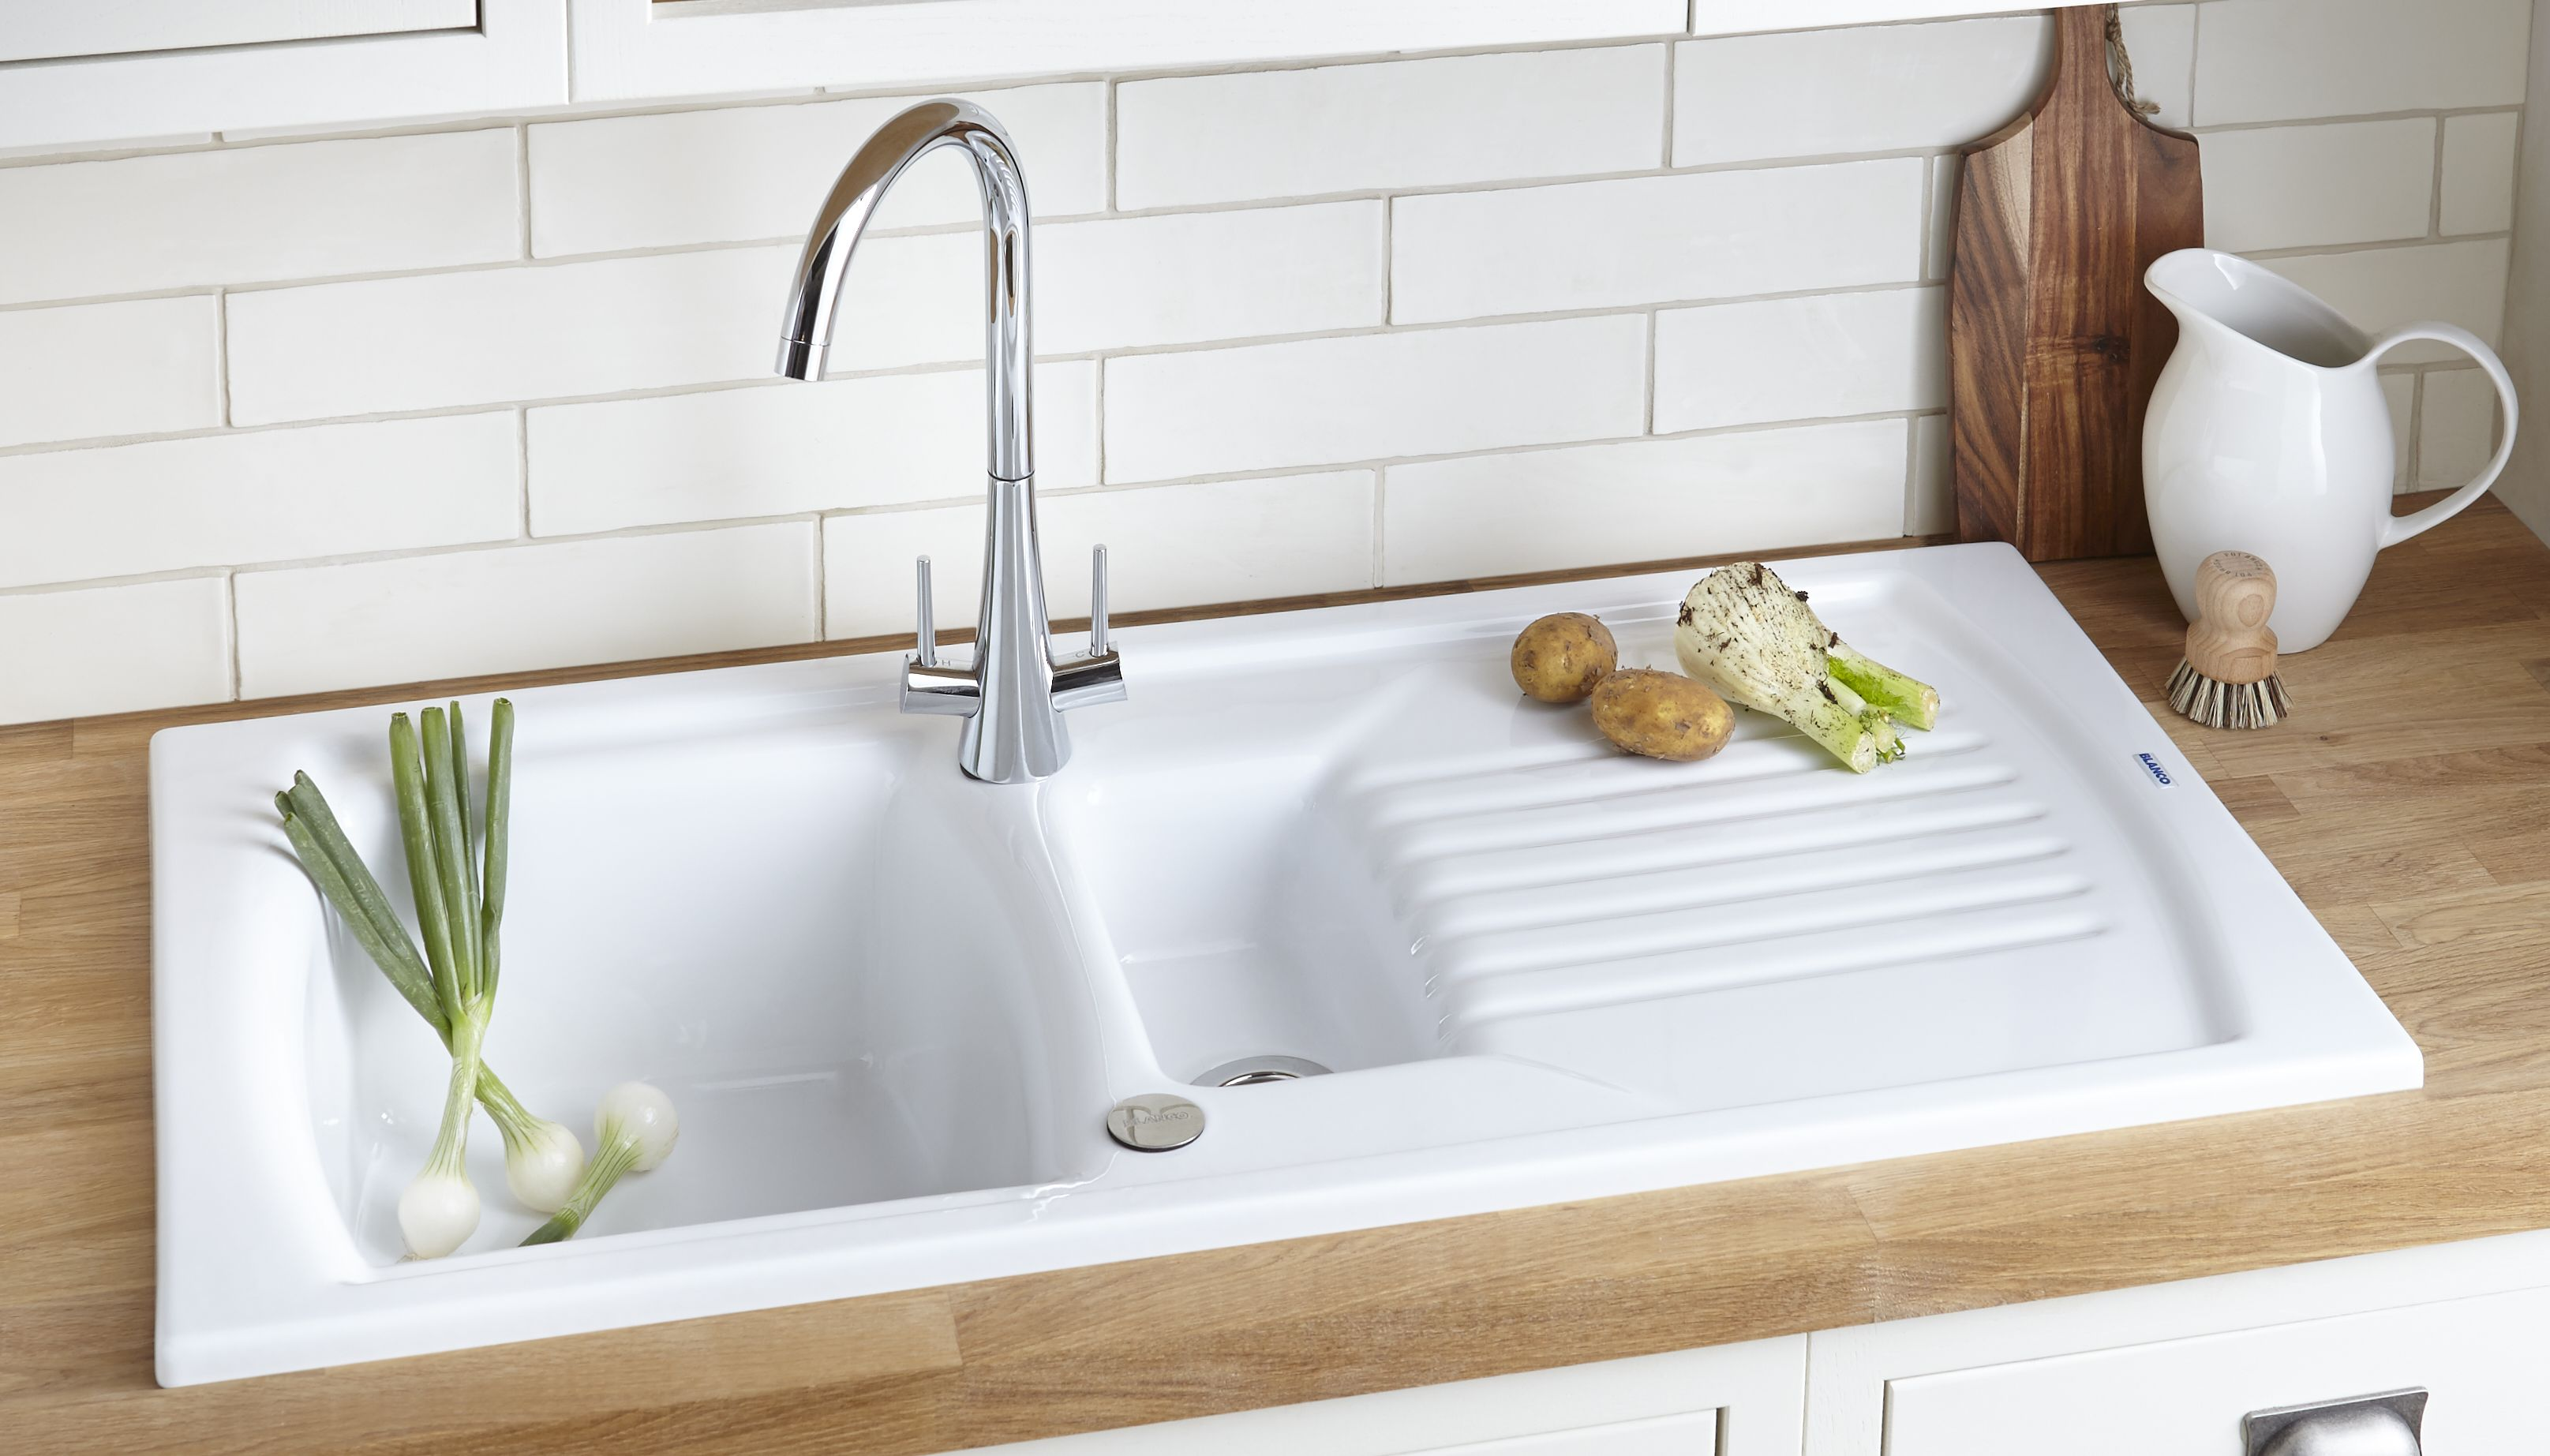 Kitchen sink buying guide ideas advice diy at bq